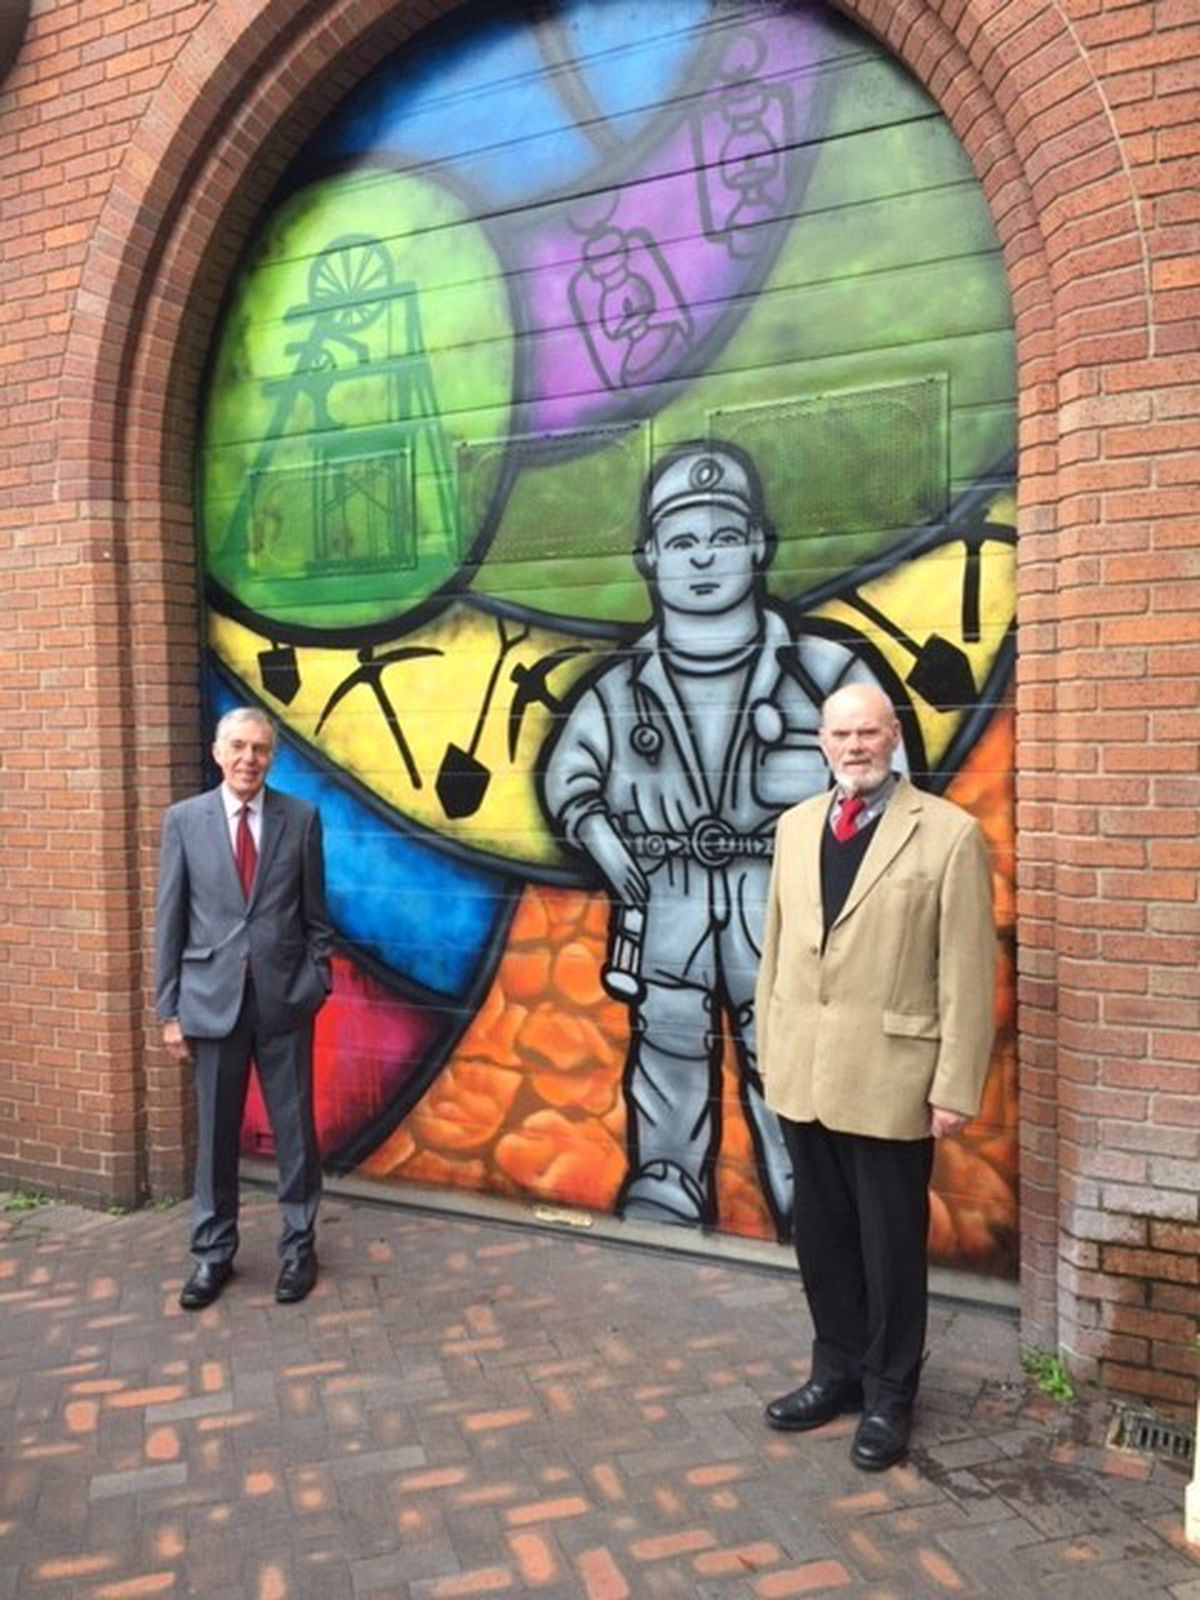 Councillor George Adamson, Leader of Cannock Chase Council with Councillor Gordon Alcott,Leader for Town Centre Regeneration viewing the newly transformed shutters in Cannock Town Centre.